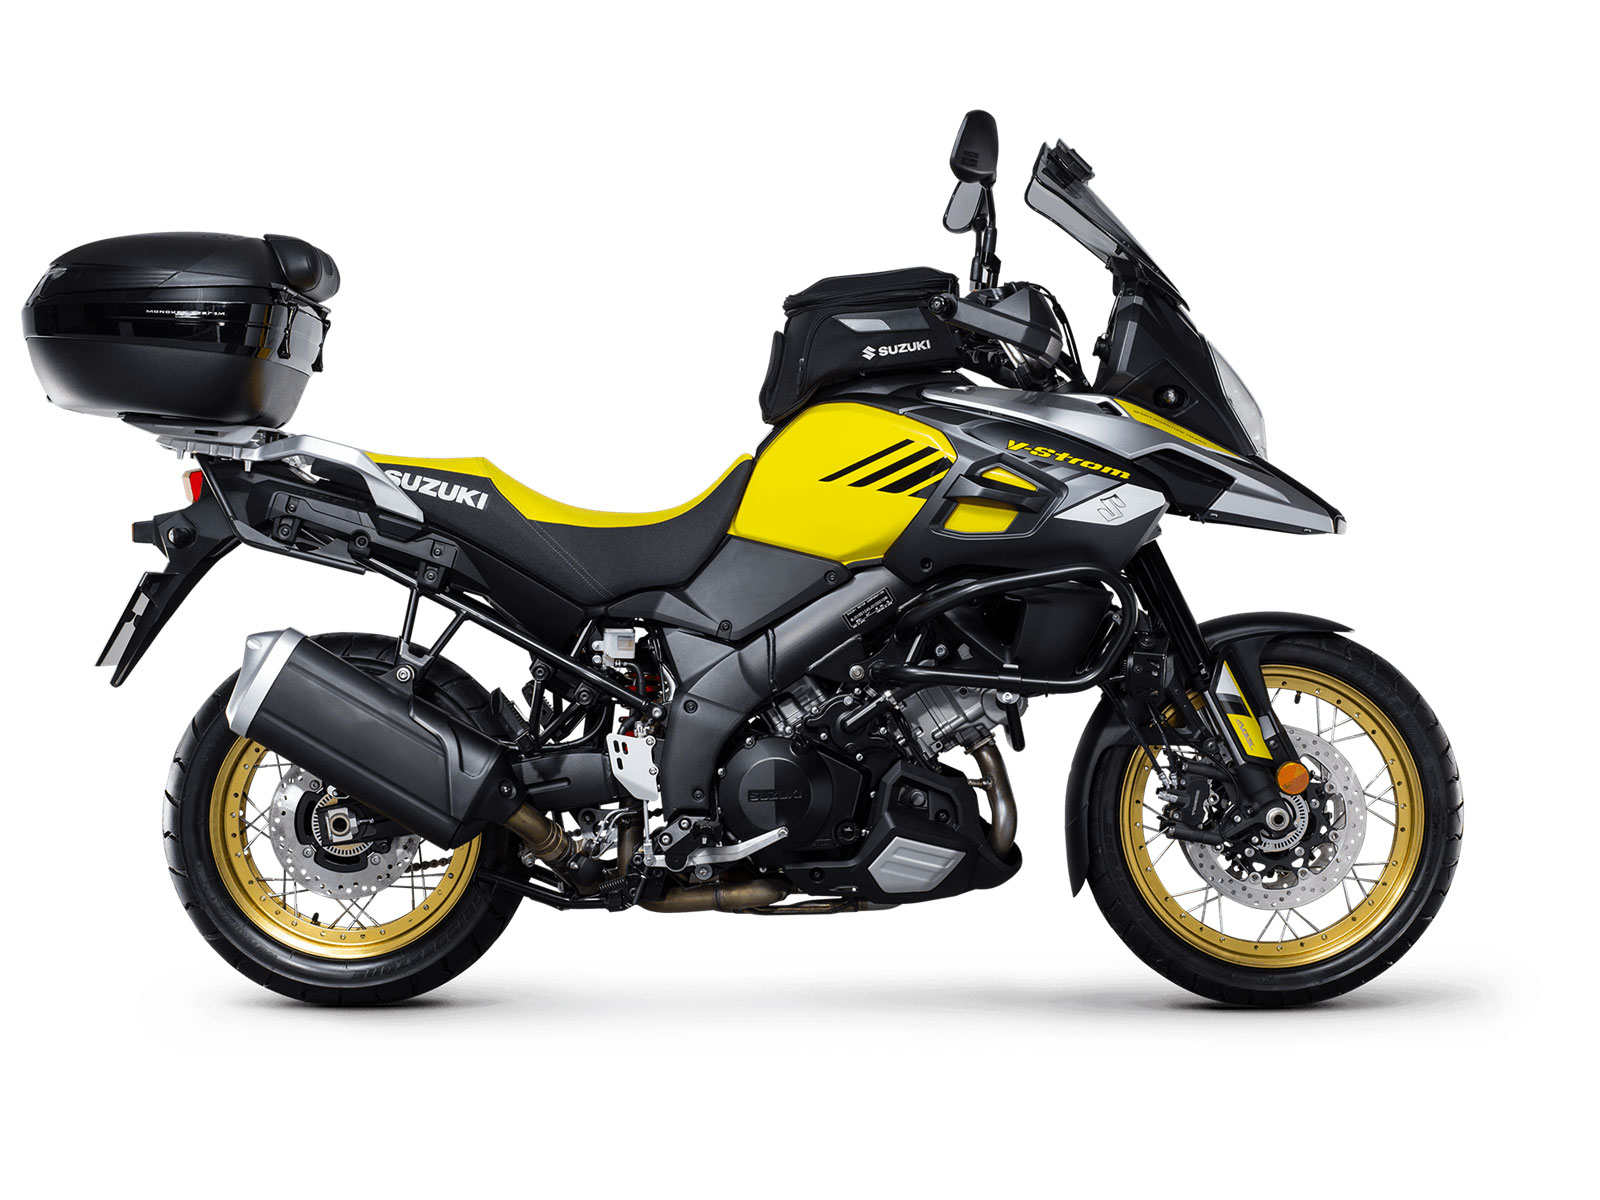 2018 suzuki v strom 1000xt abs review total motorcycle. Black Bedroom Furniture Sets. Home Design Ideas